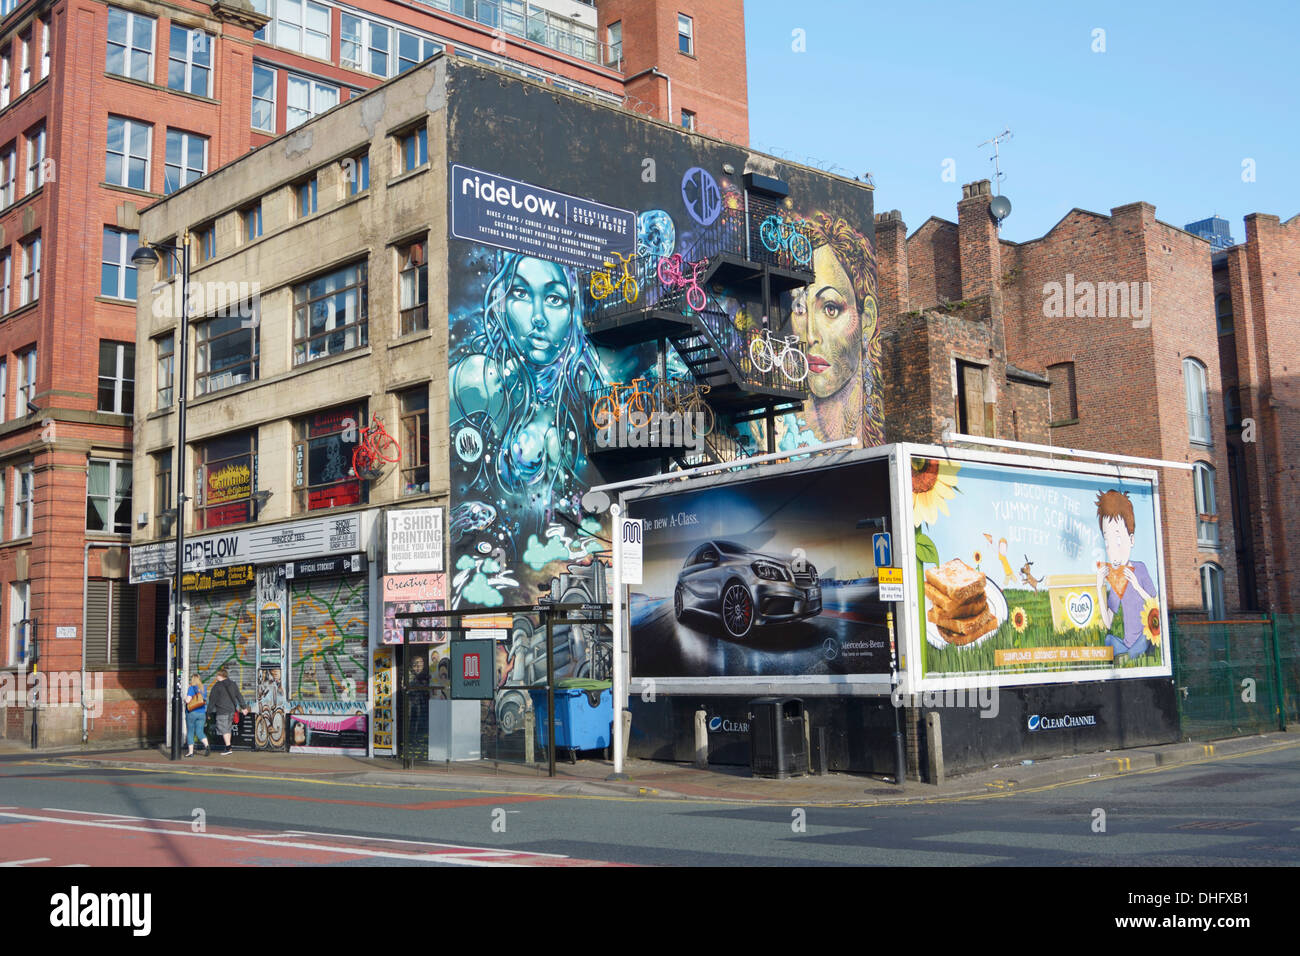 Graffiti on the side of Ridelow Bike shop in Church Street, Northern Quarter of Manchester. - Stock Image